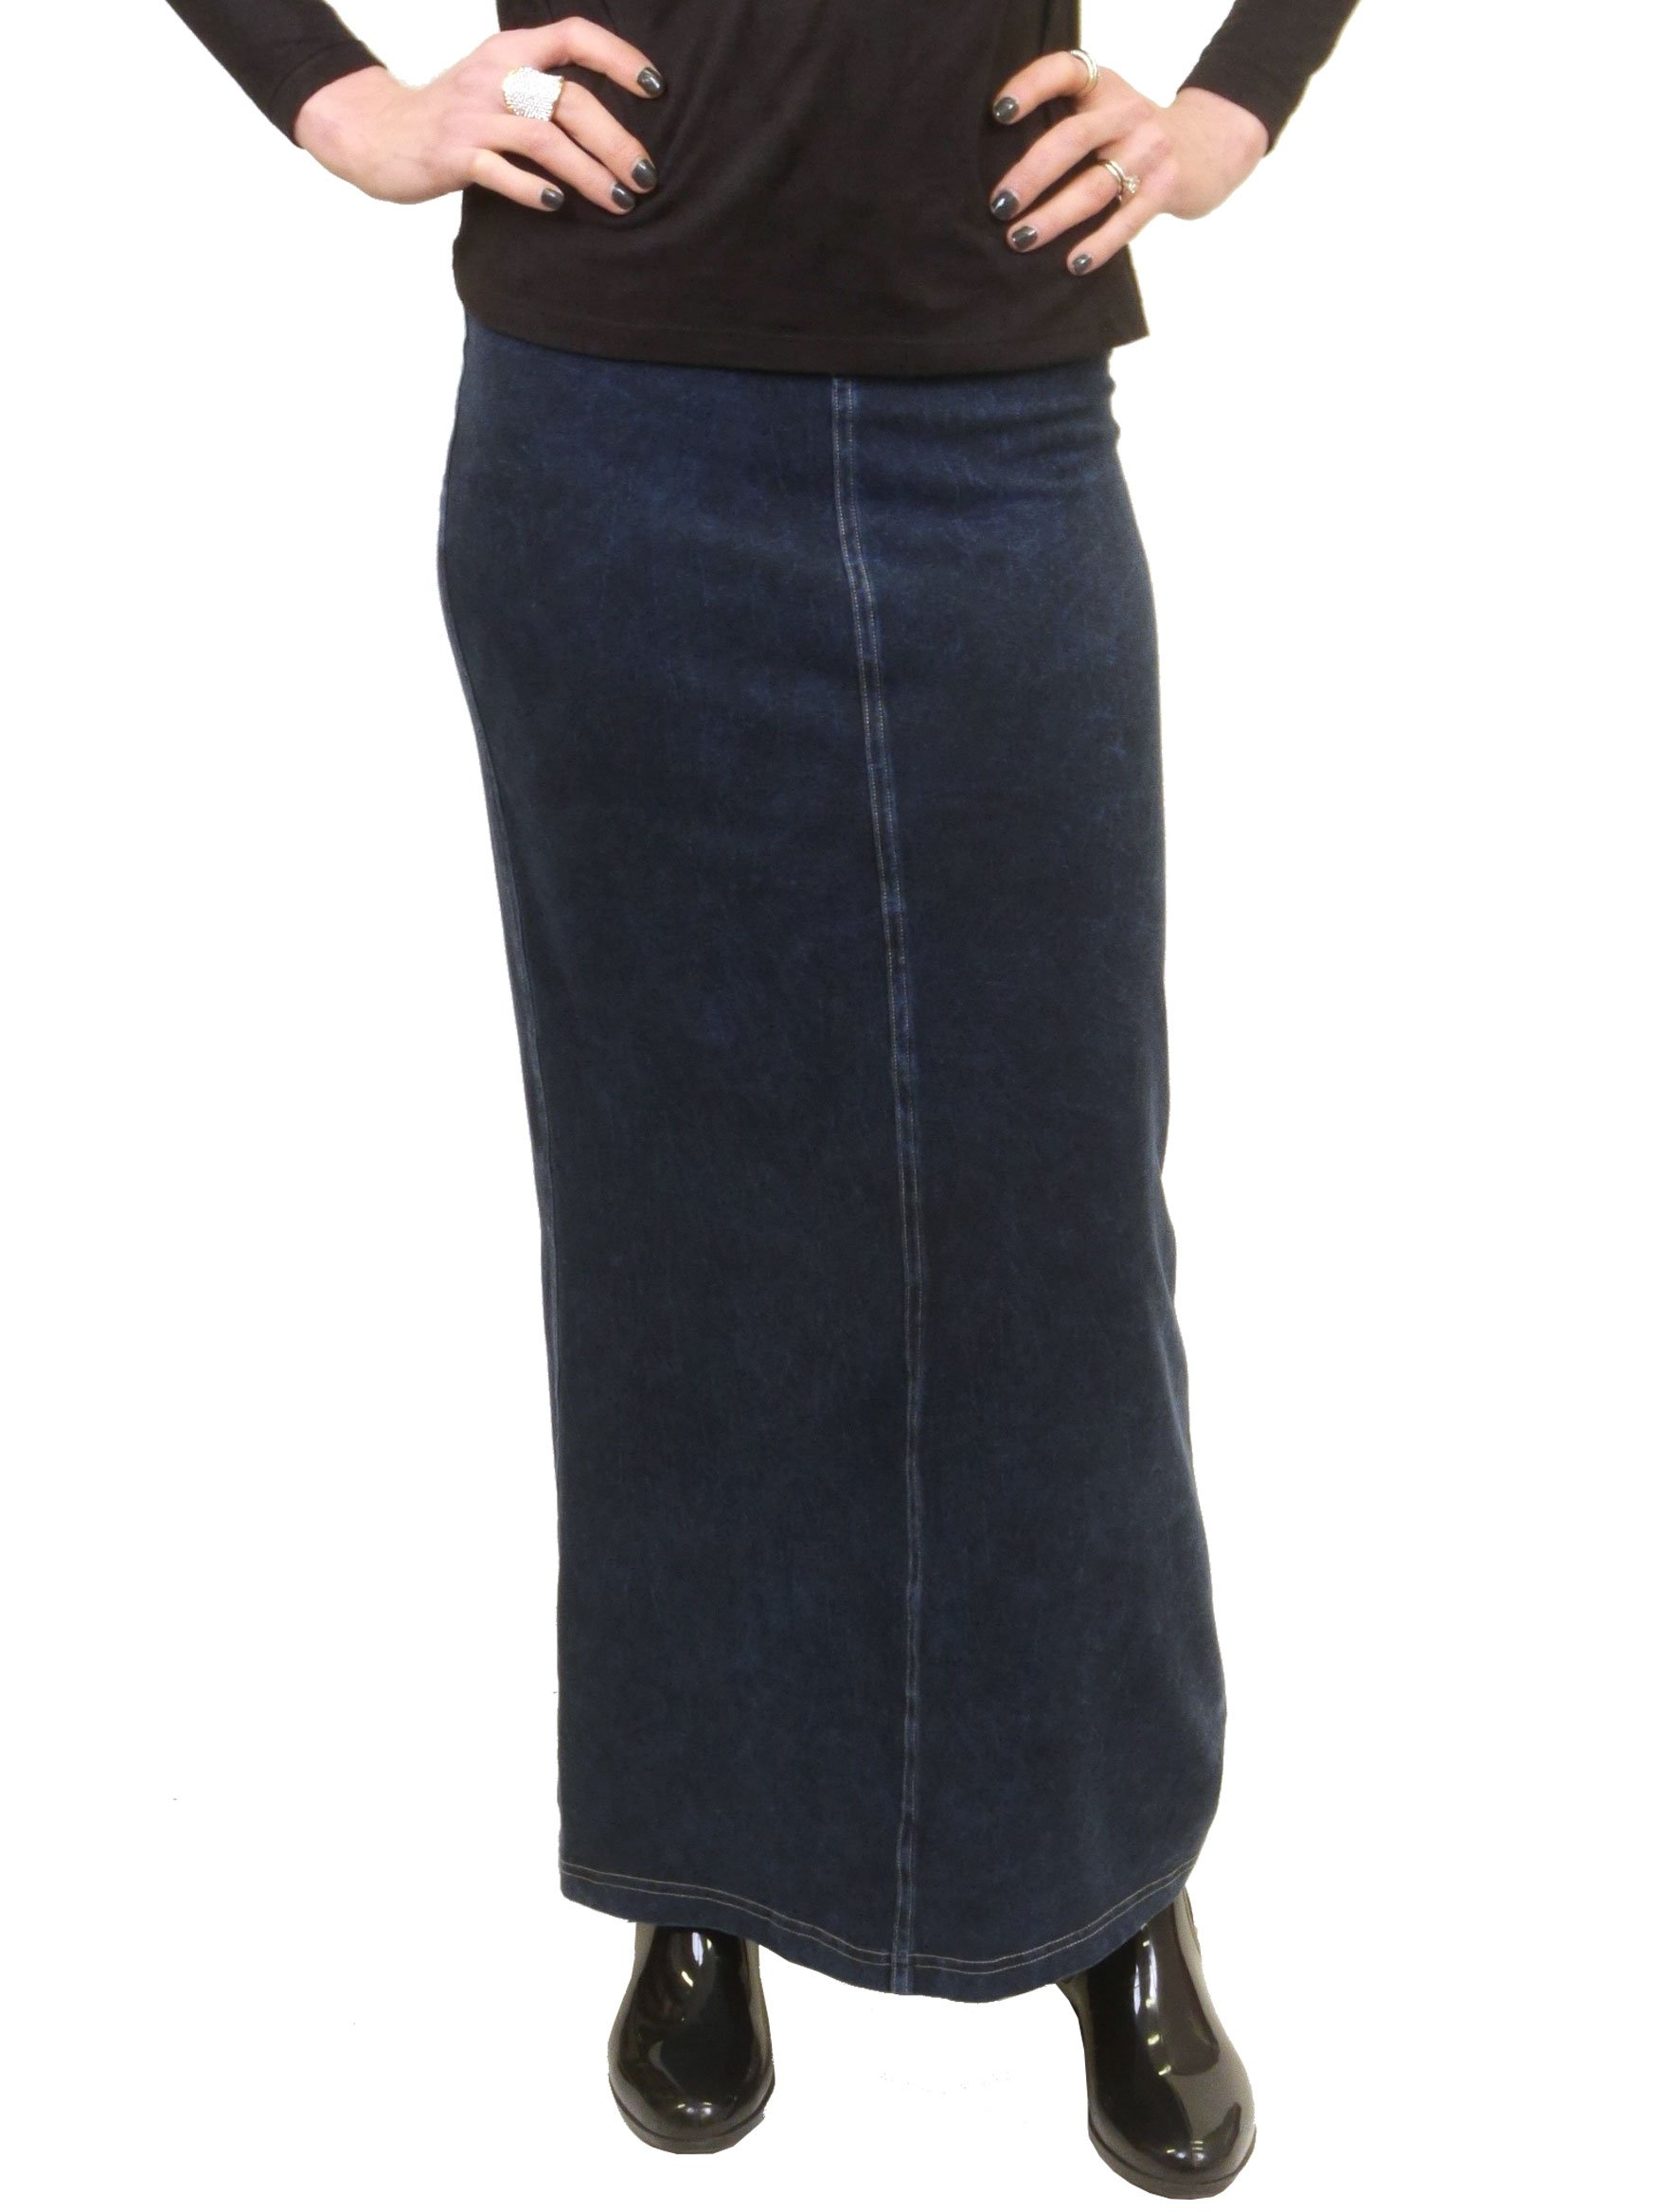 Hardtail Long Denim Skirt (XL, Dark)